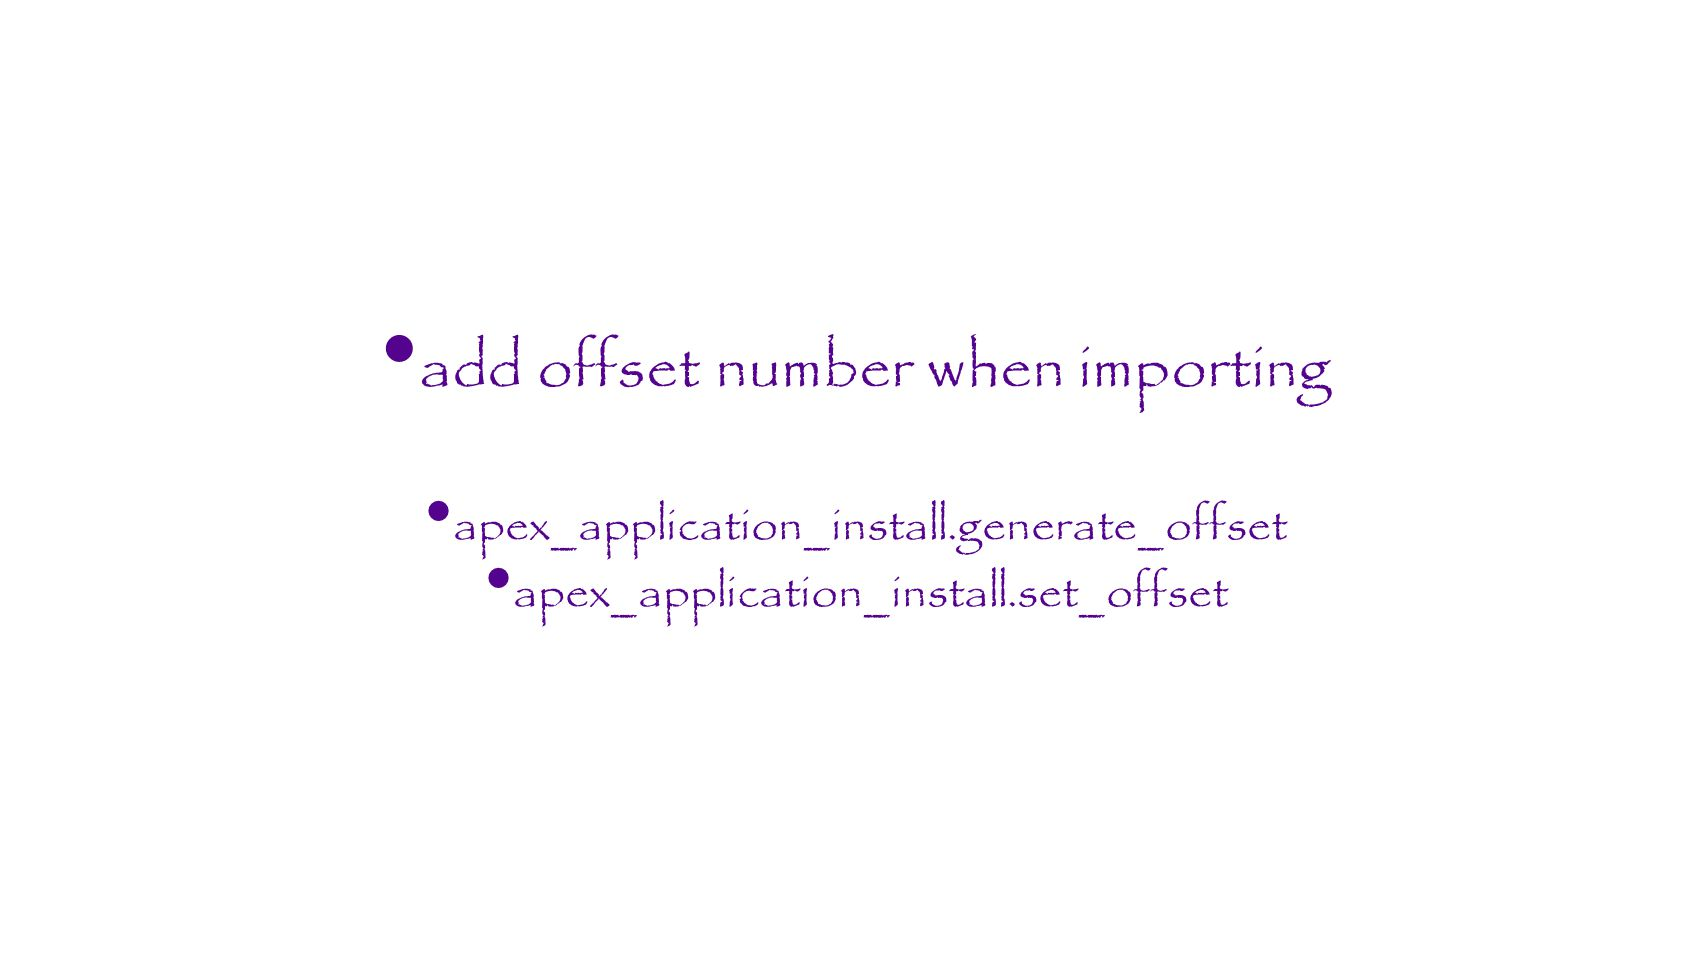 add offset number when importing apex_application_install.generate_offset apex_application_install.set_offset